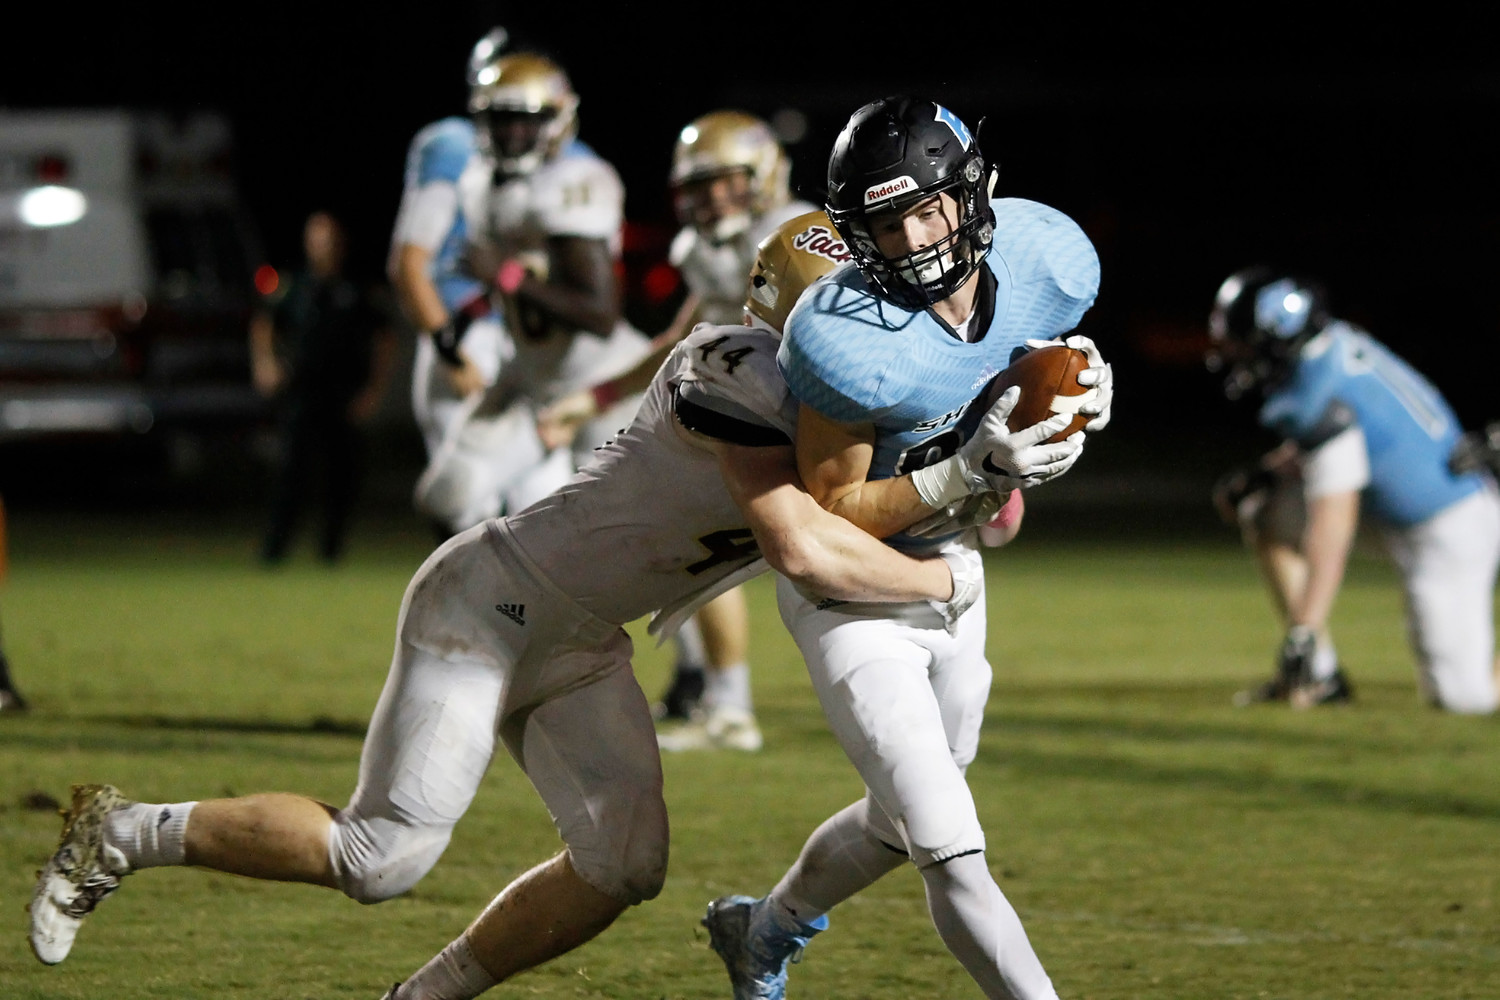 Reese Russi of Ponte Vedra is tackled after catching a Jack Murrah pass.